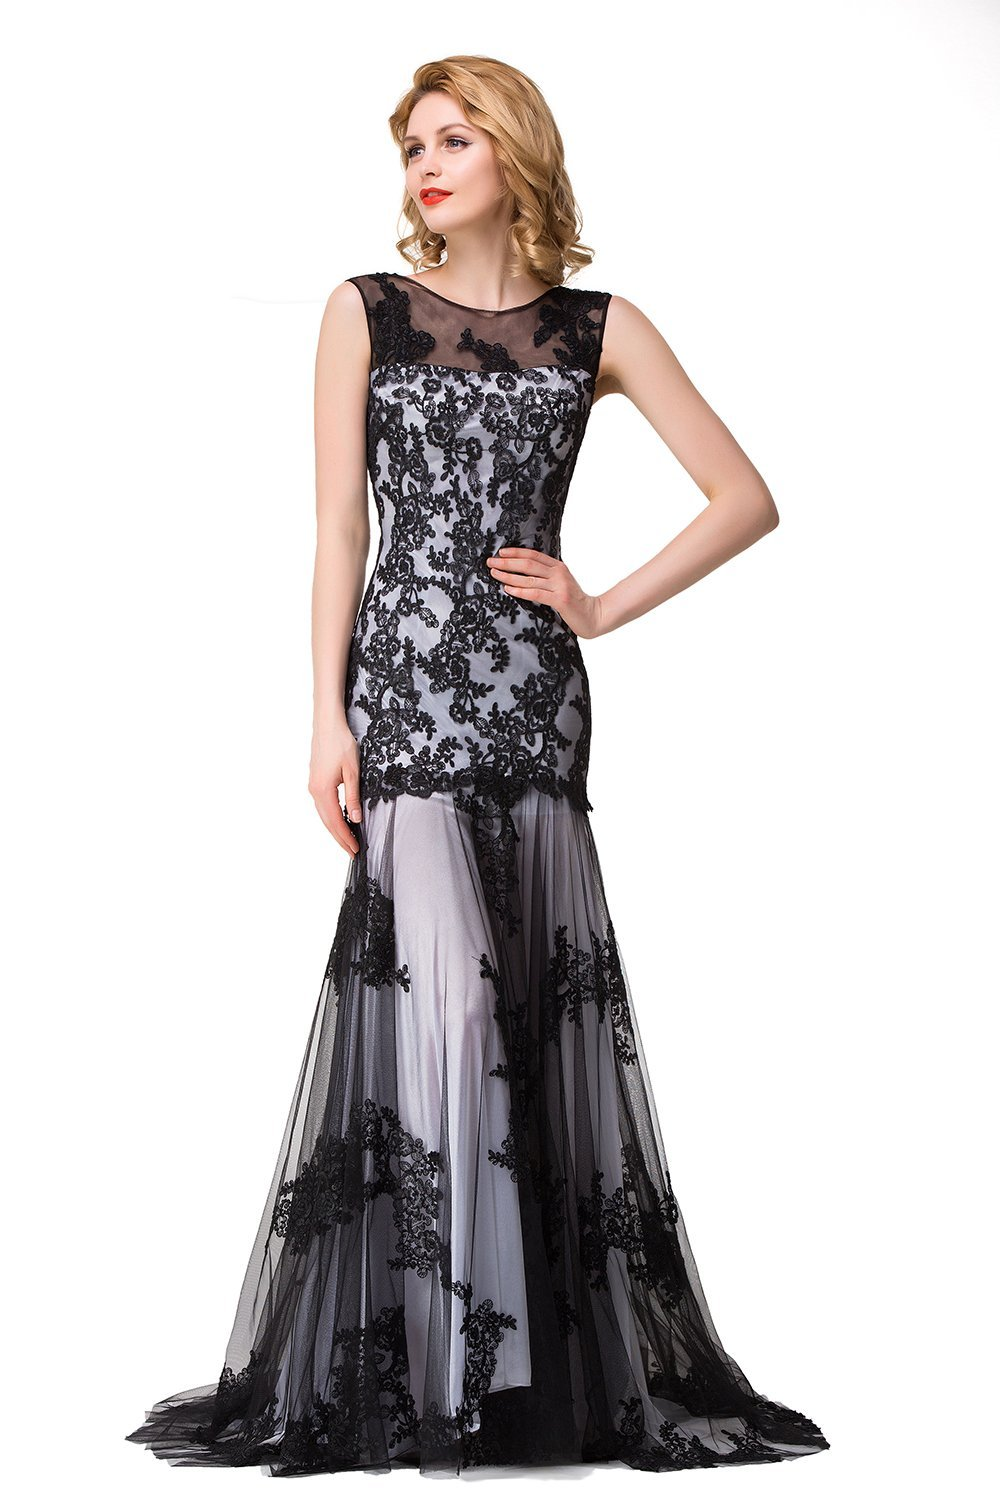 Babyonlinedress black lace applique silver Mermaid style evening gowns,Silver,16